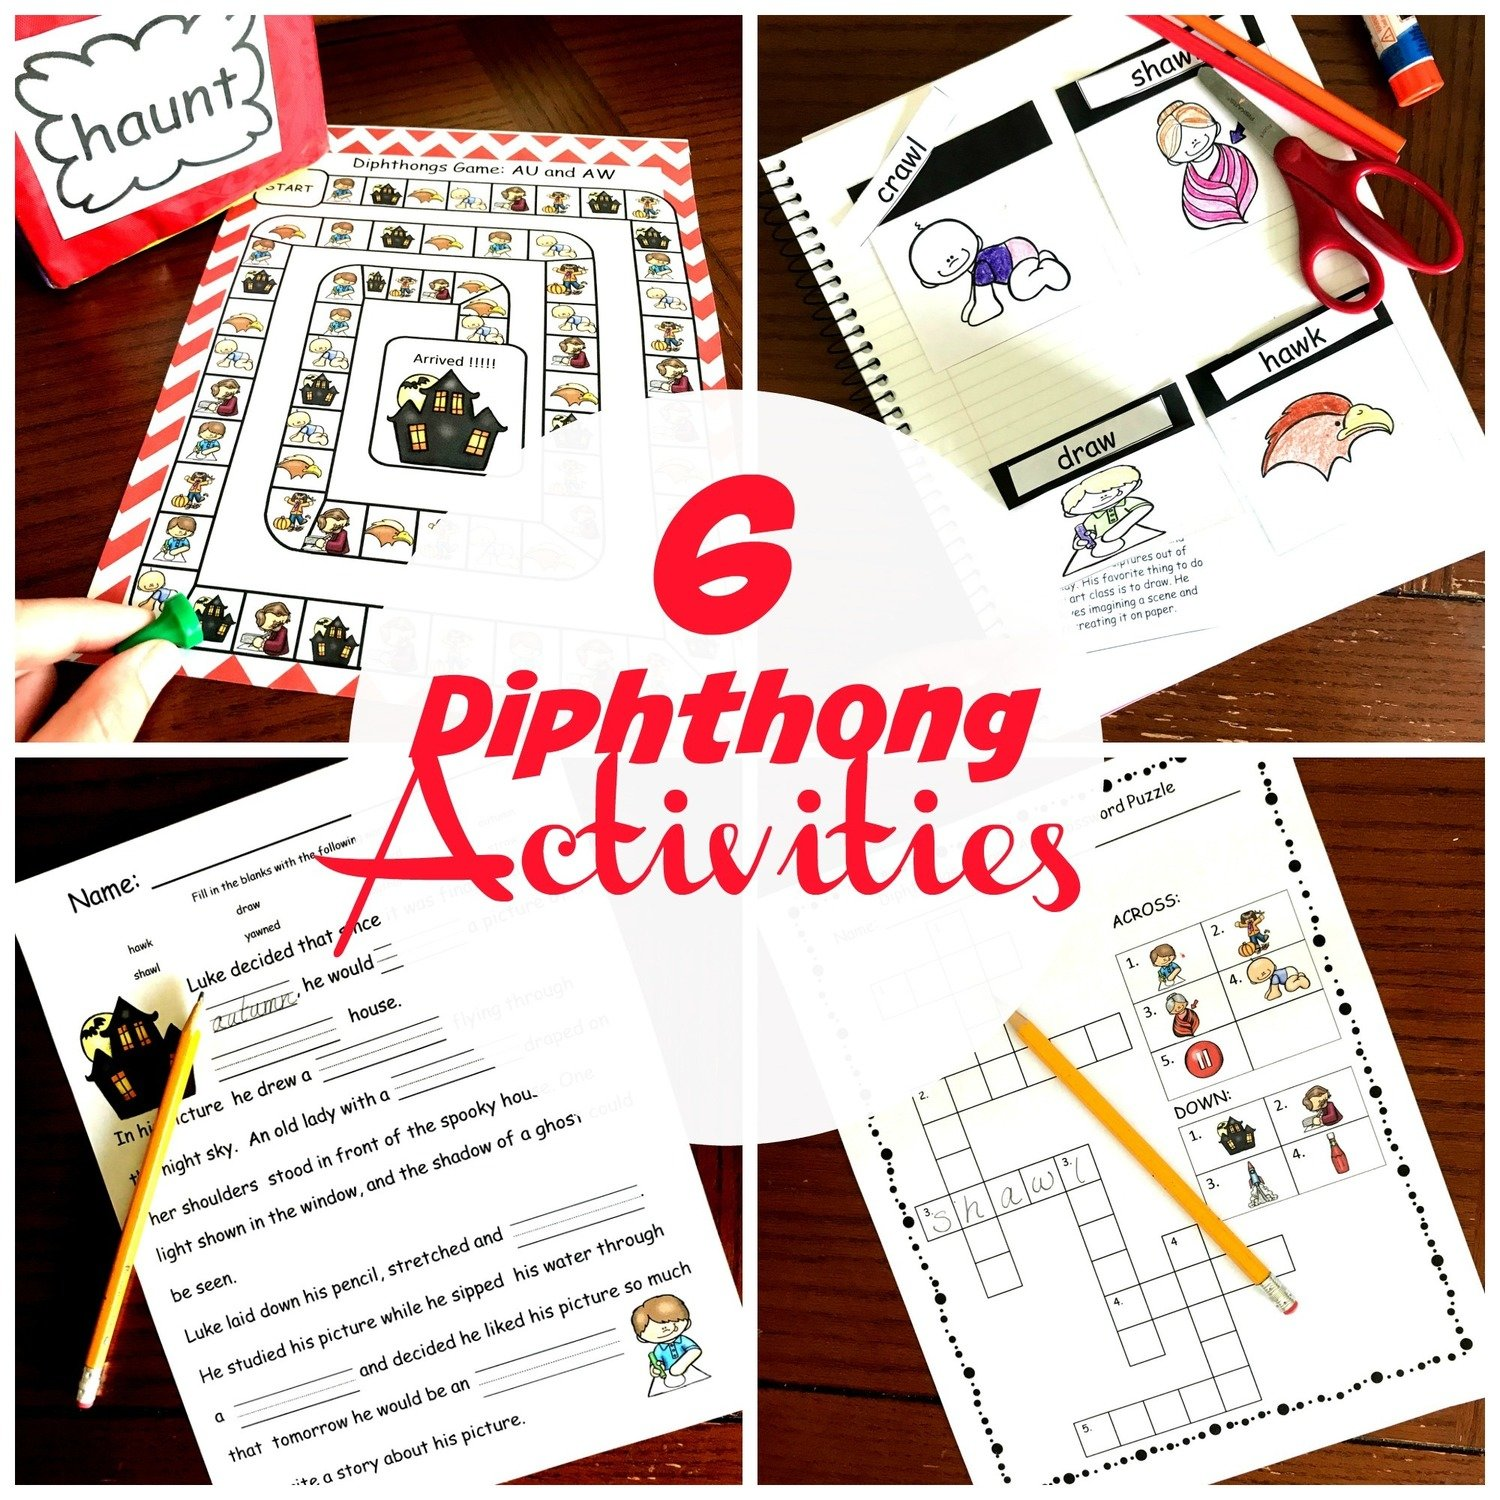 6 Diphthong Activities